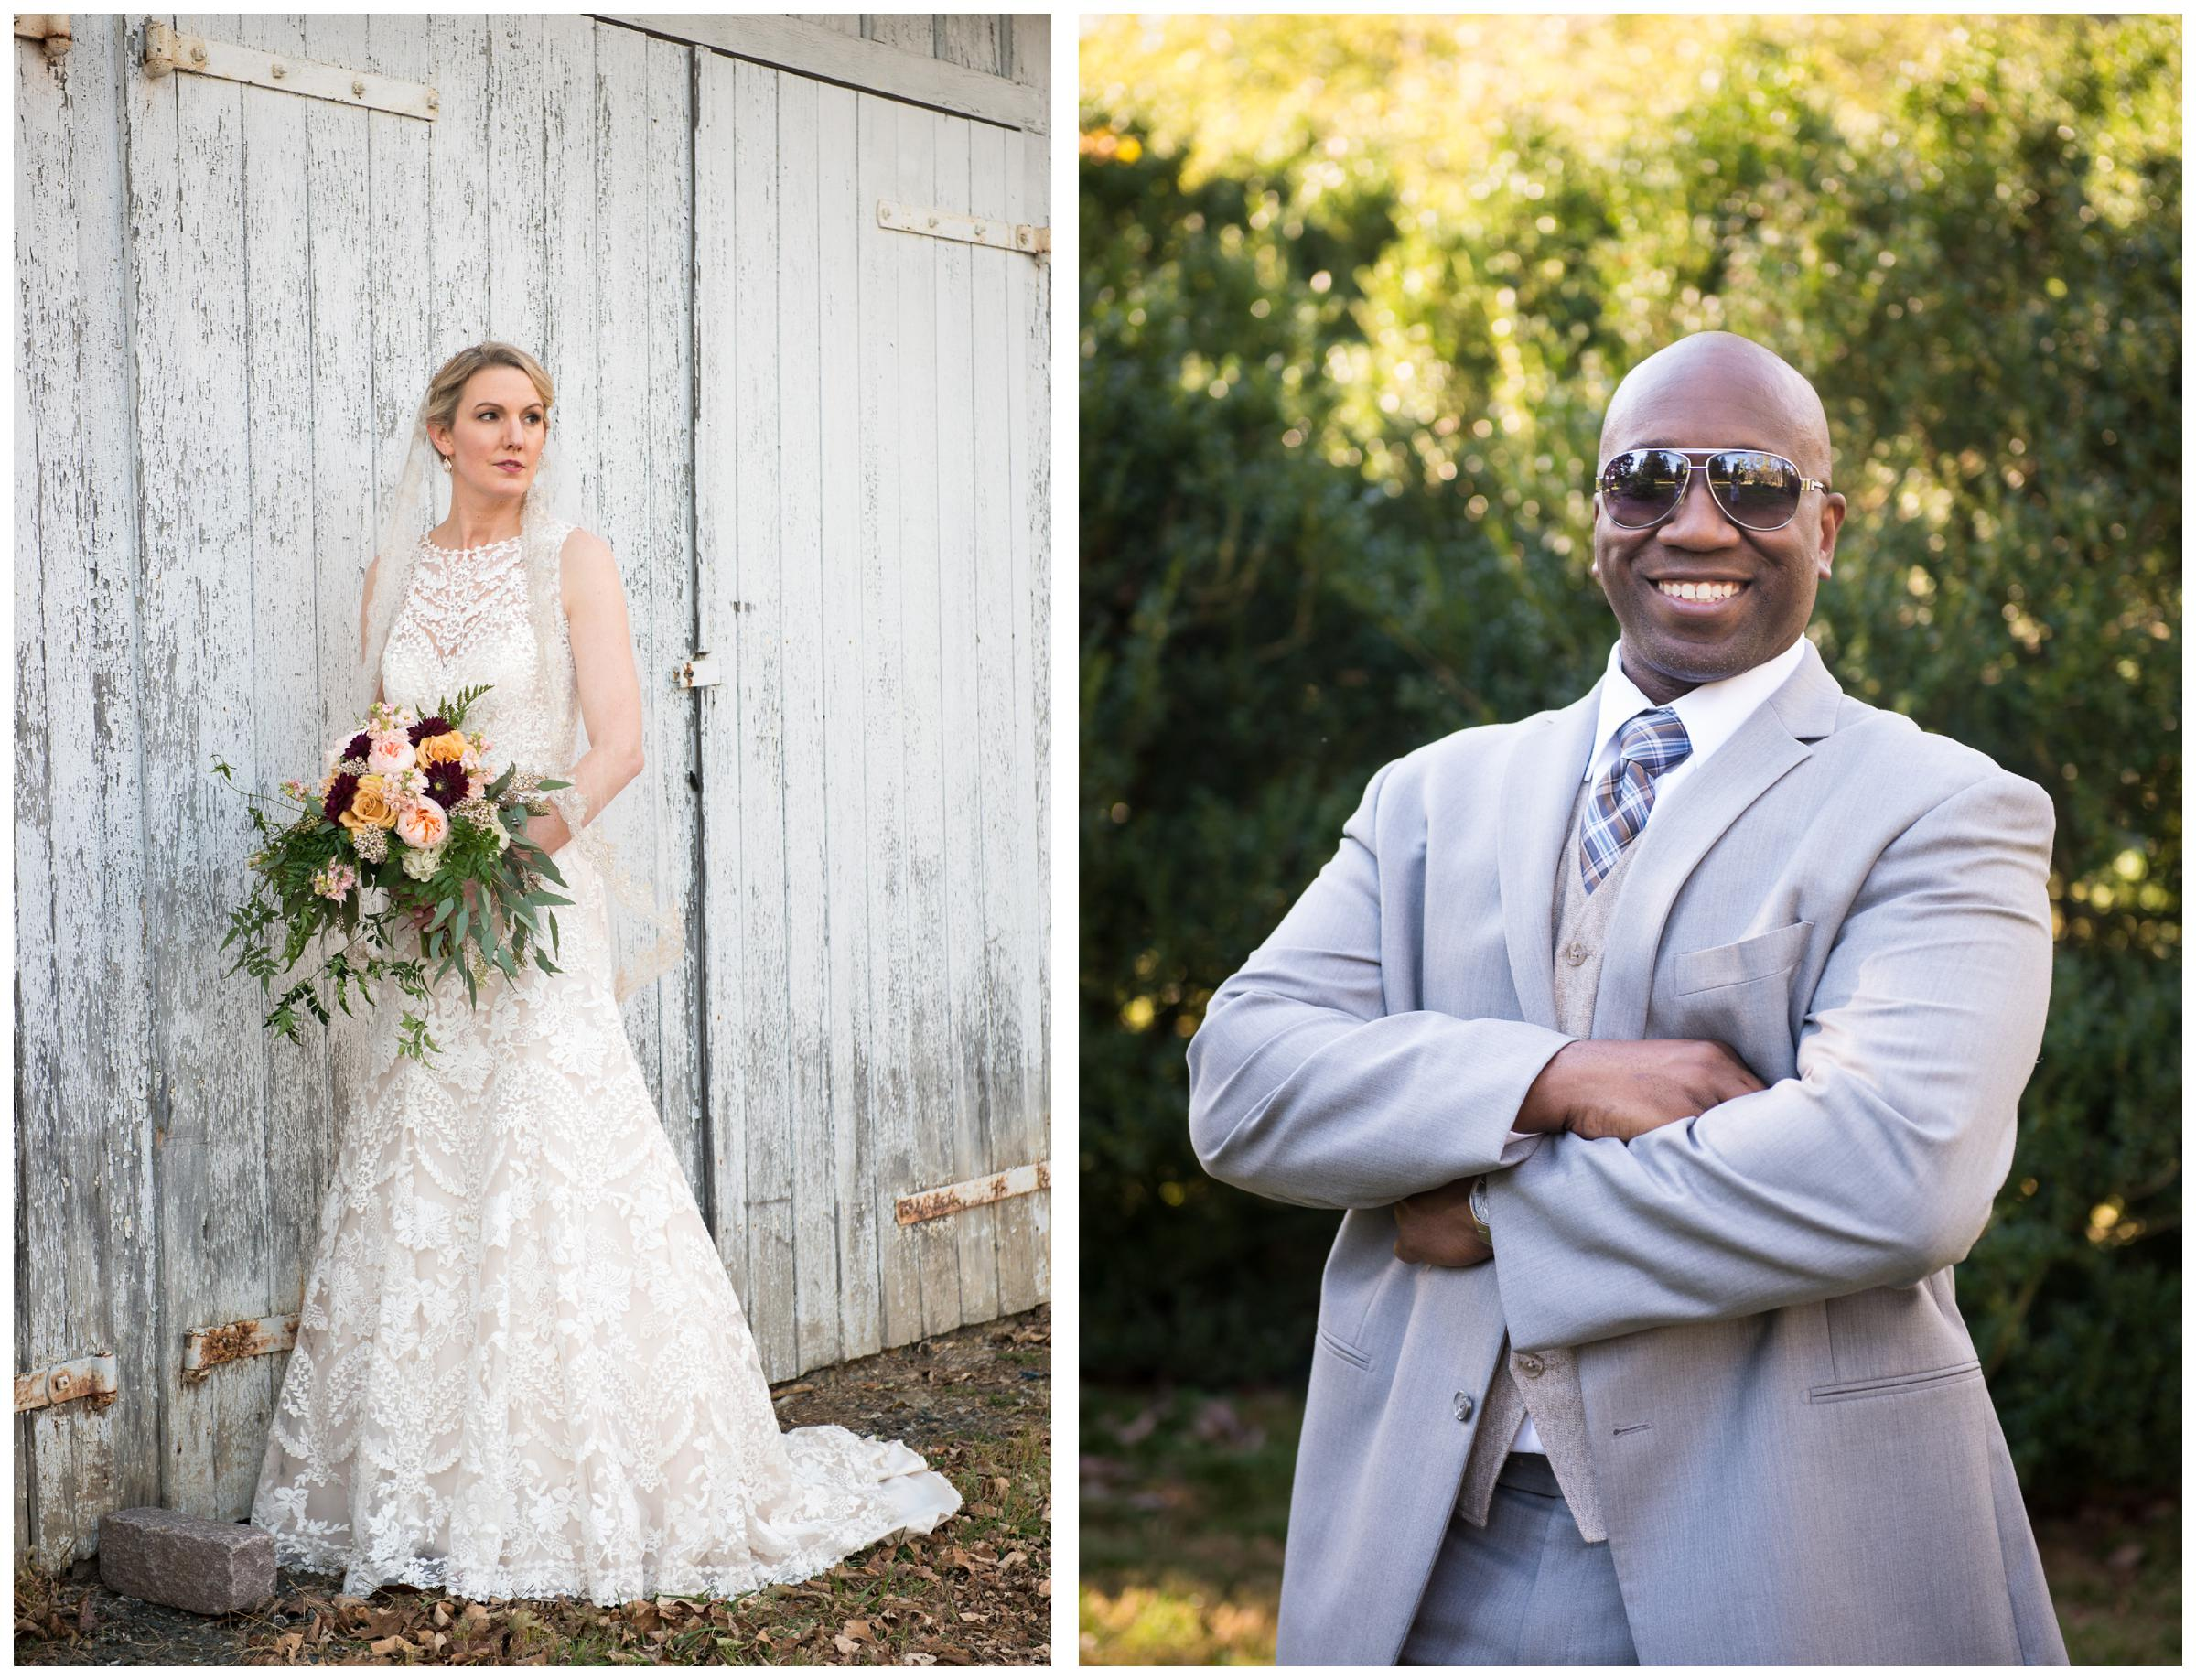 bride in lace gown and groom in grey suit wearing sunglasses